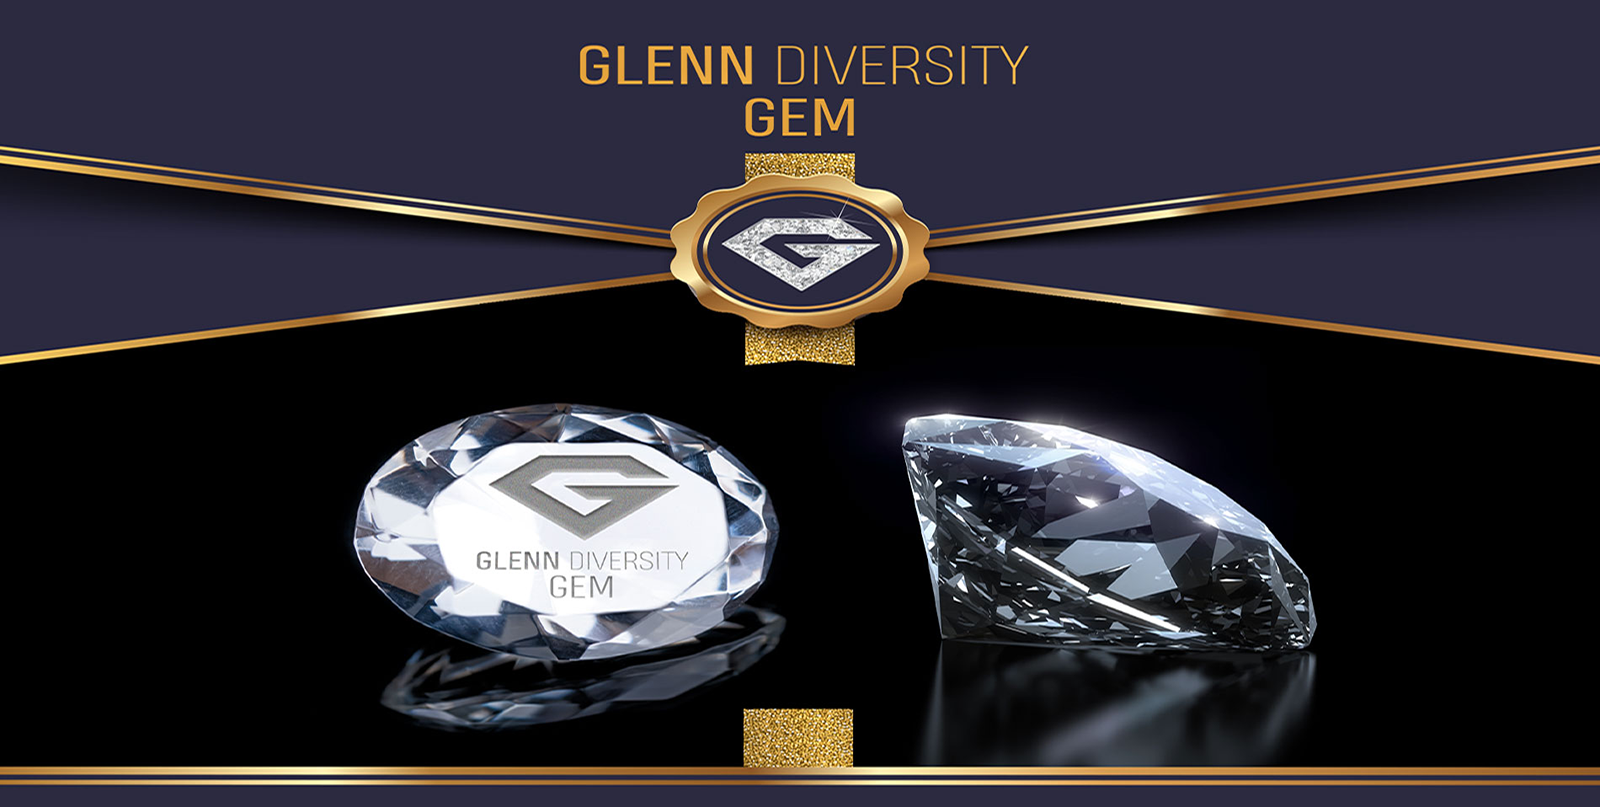 Core Values and GEMS